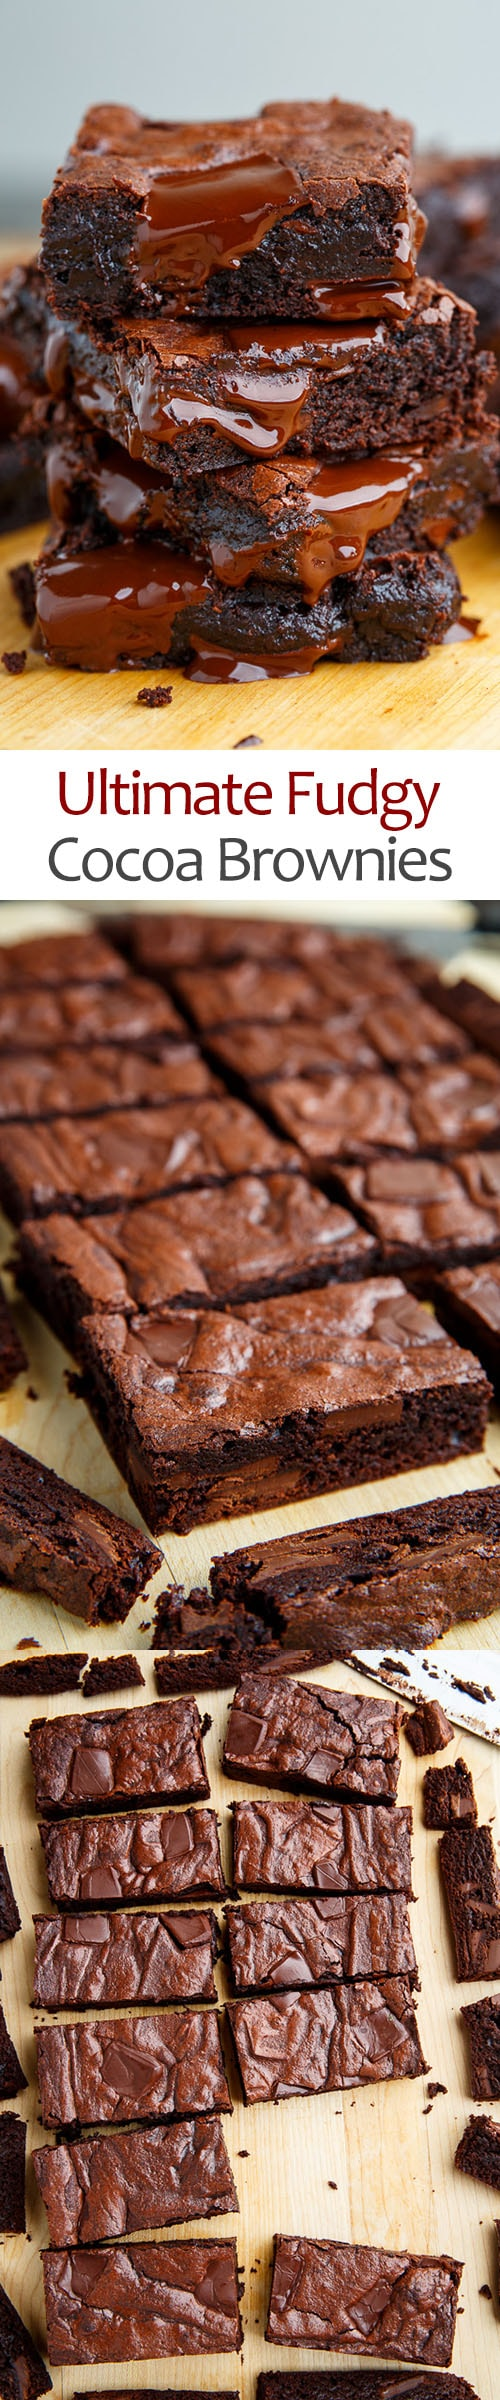 Ultimate Fudgy Cocoa Brownies